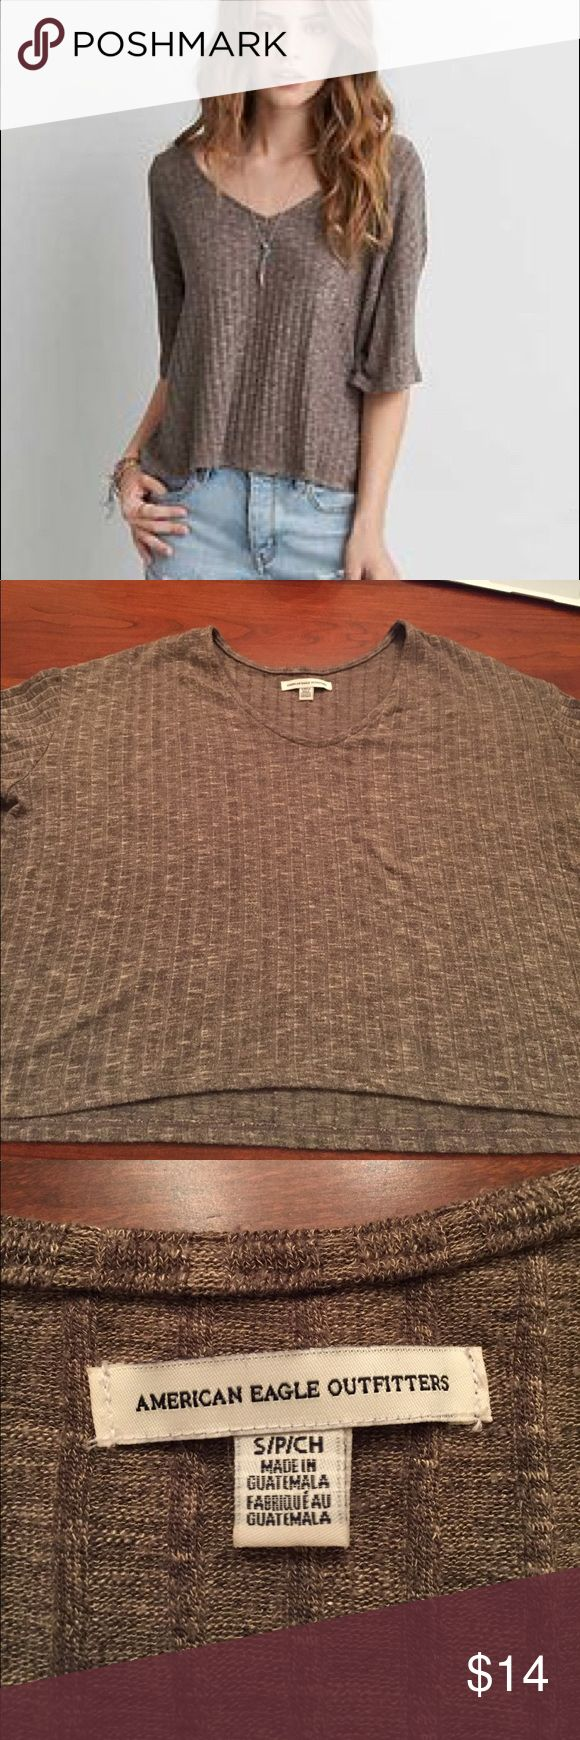 """American Eagle Sweater Flowy Tshirt Flowy tshirt that is sweater material. On my 5'8"""" body and long torso, slightly turned into a crop top. Very soft and comfy material. Flattering neckline. Rarely worn American Eagle Outfitters Tops Tees - Short Sleeve"""